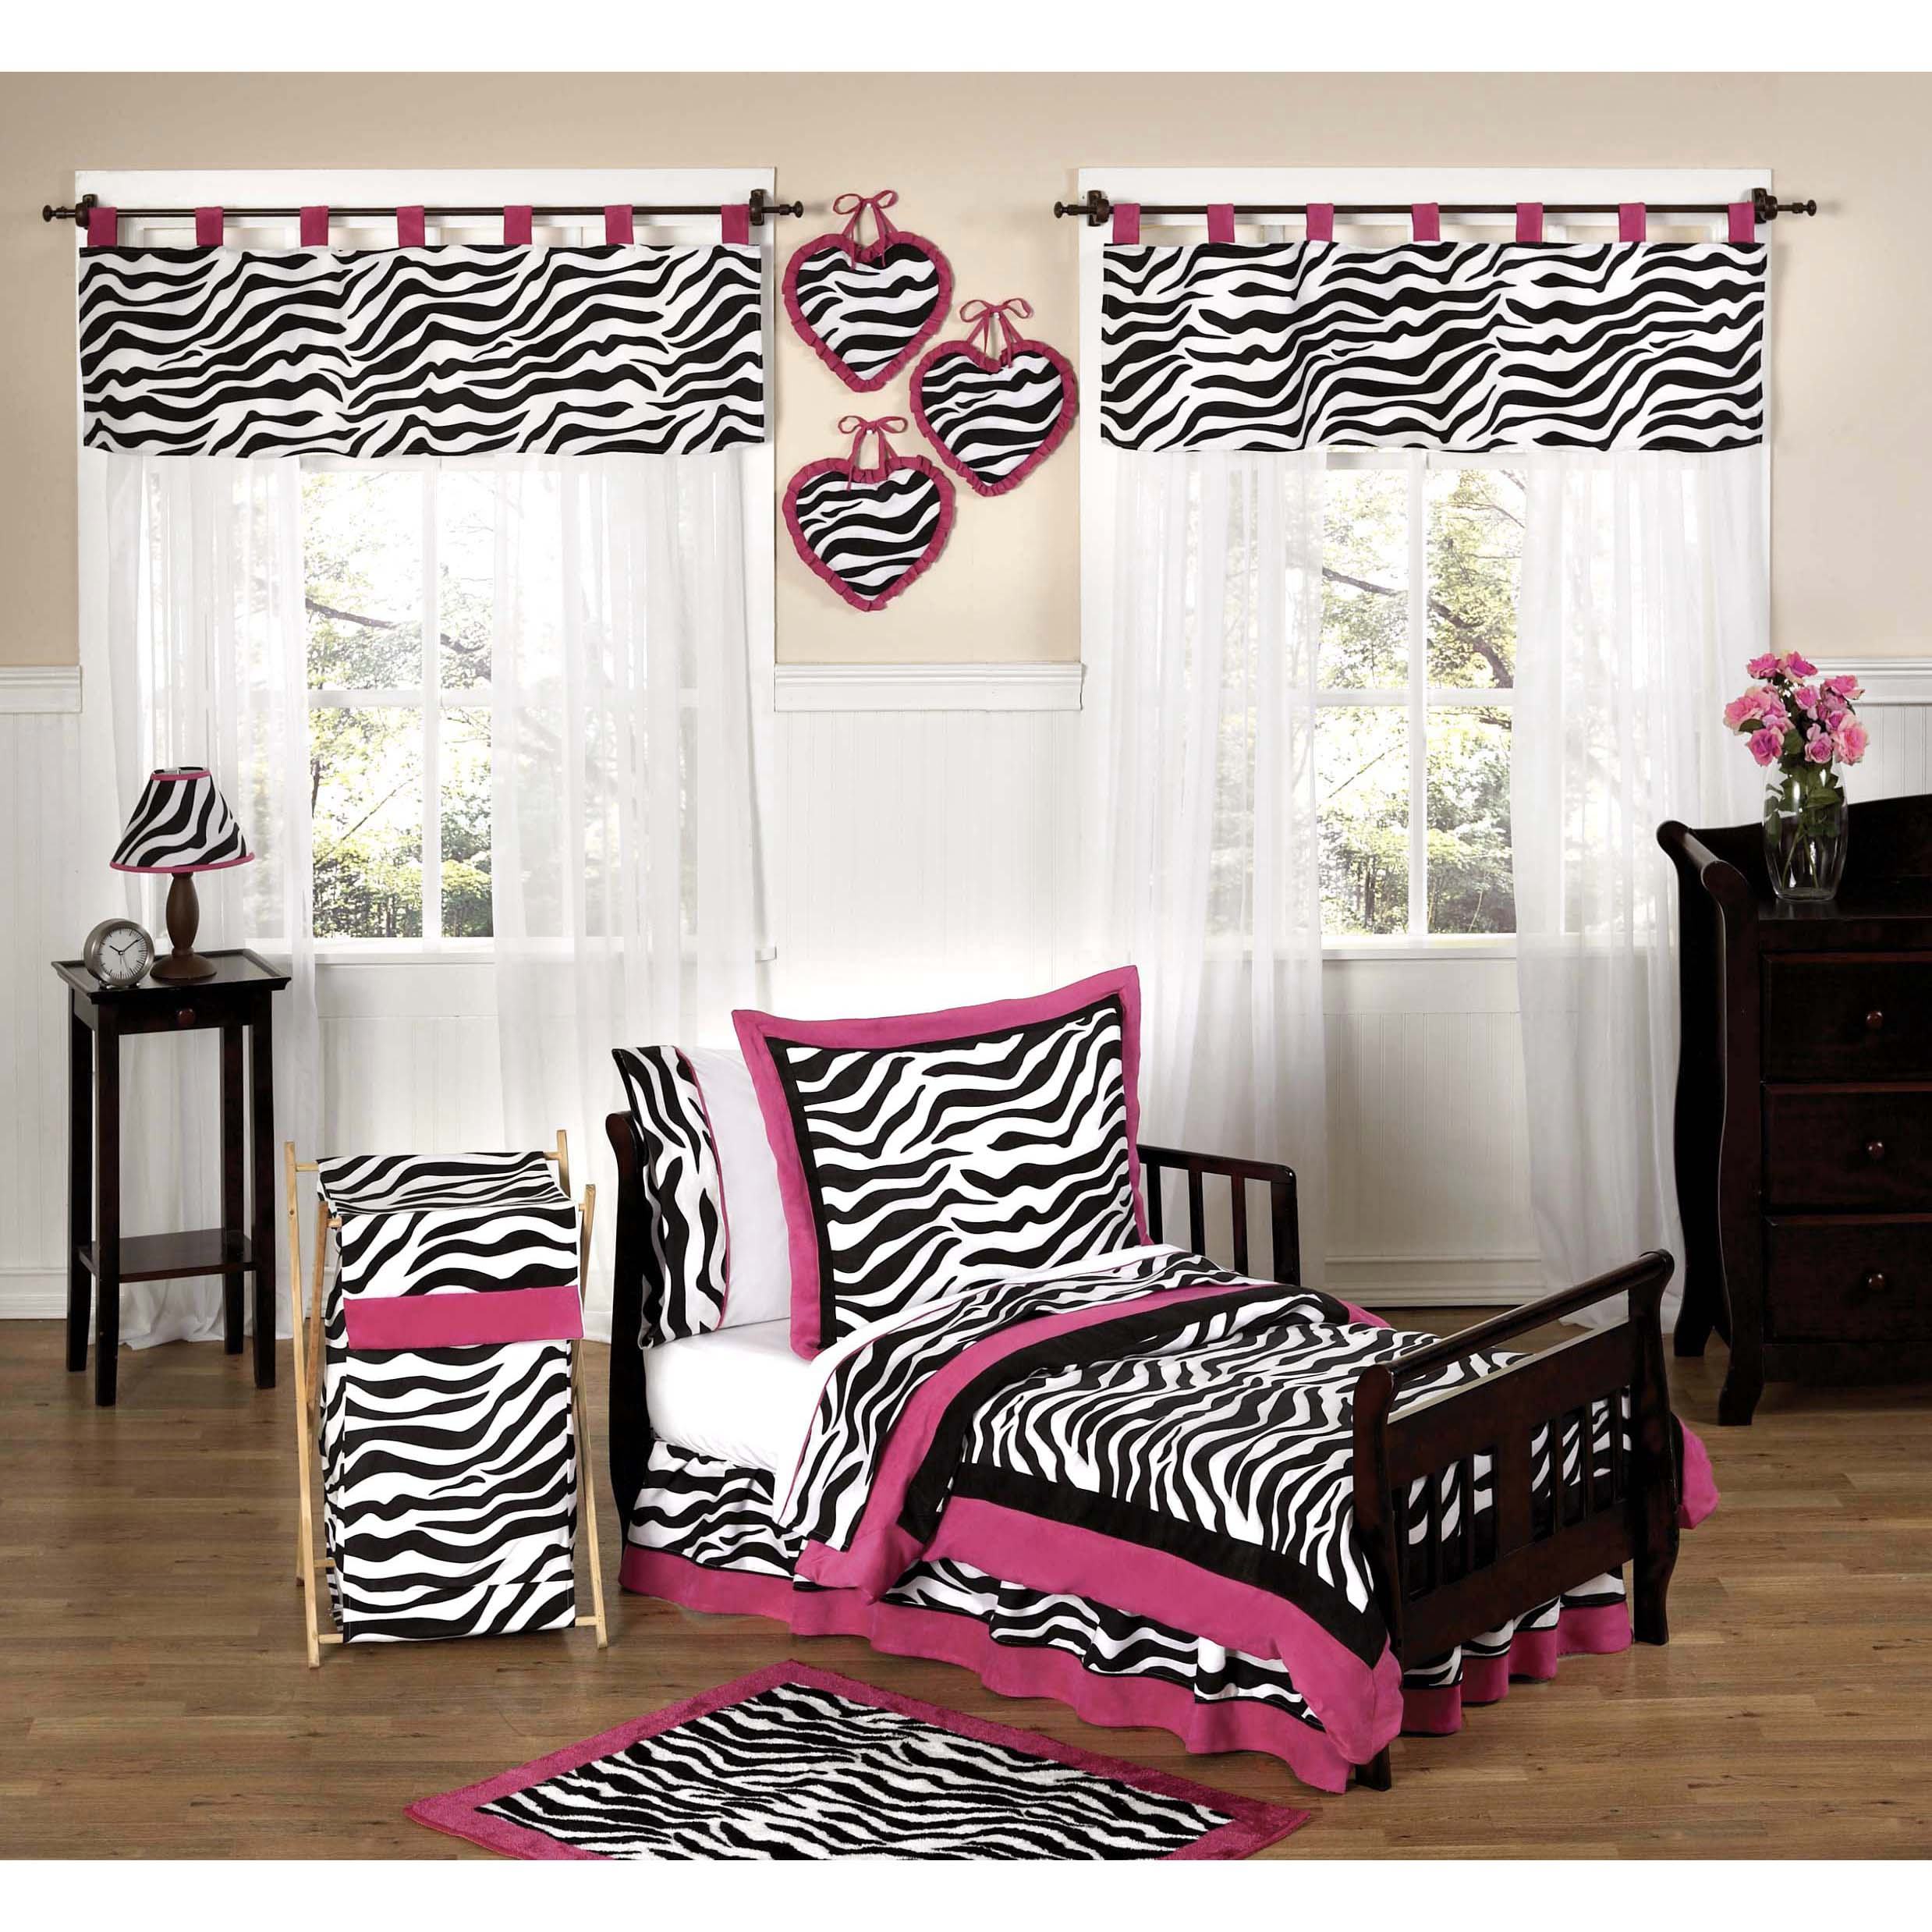 online and cotton comforter affordable collections twin size teal luxury set comforters for cover grey sheets beds queen bed black king white sets gray with pink pretty bedding